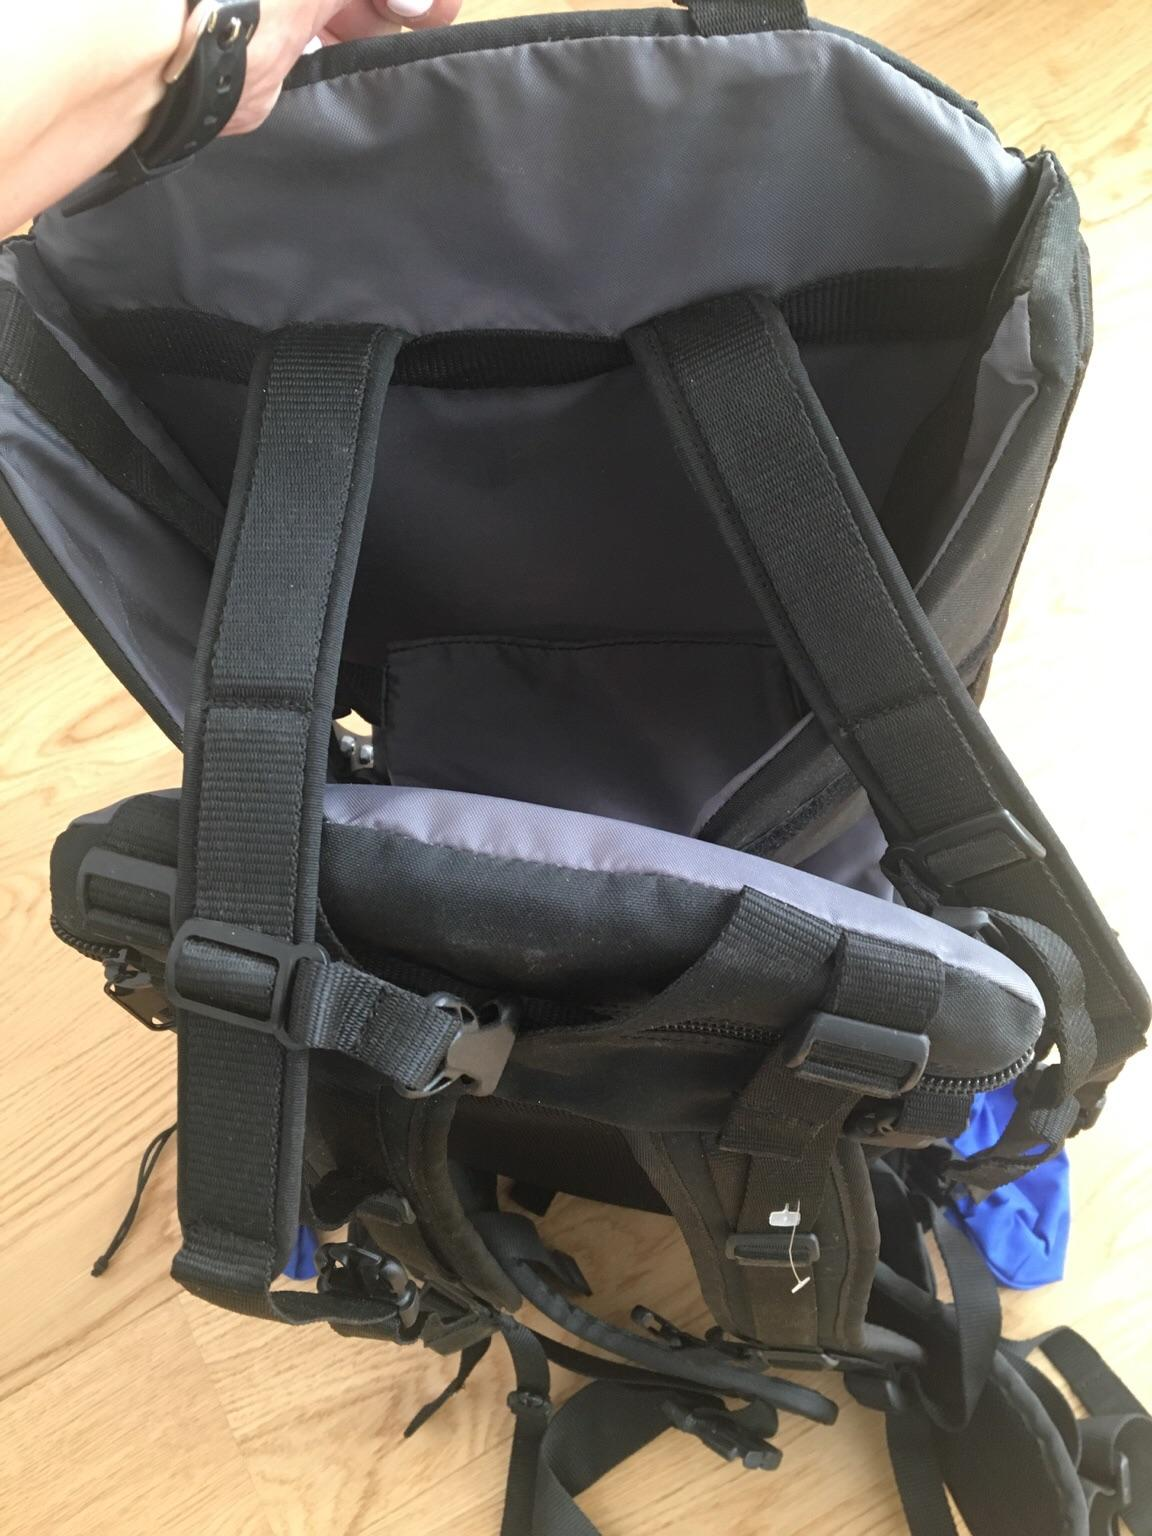 Jack Wolfskin Kinderrucksack in 1200 Wien for €20.00 for